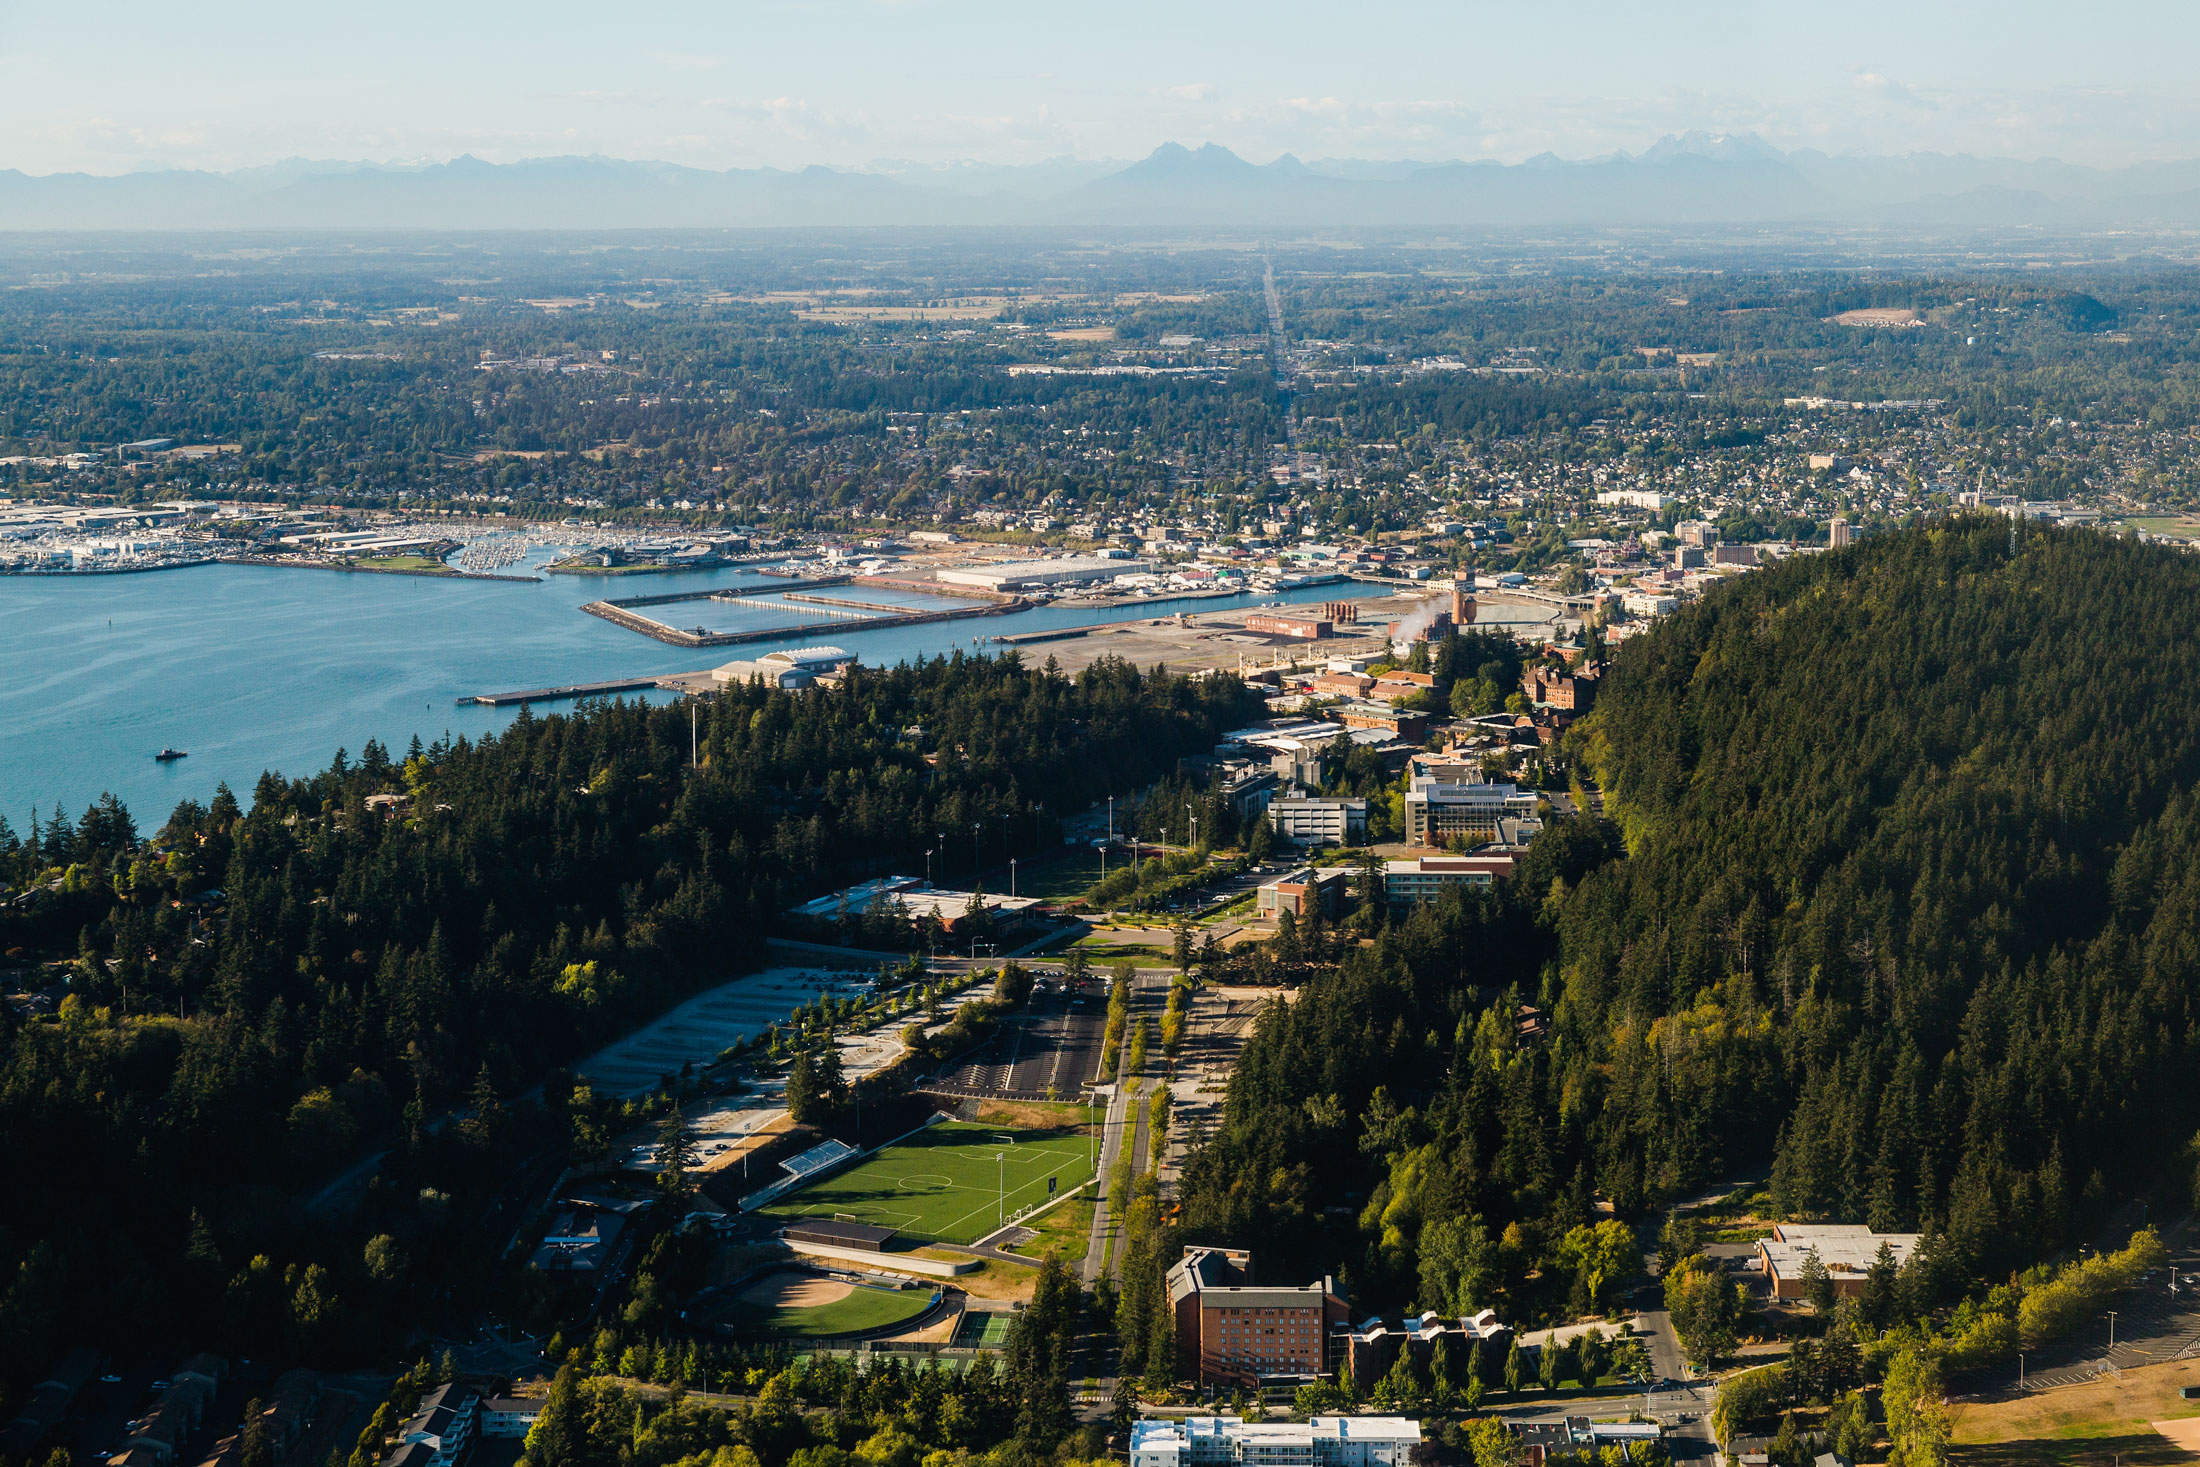 An aerial view of WWU campus in the foreground and Downtown Bellingham in the background. To the left is the bay and far in the back is a ridge of mountains on the skyline, peaking through the mid-day haze.